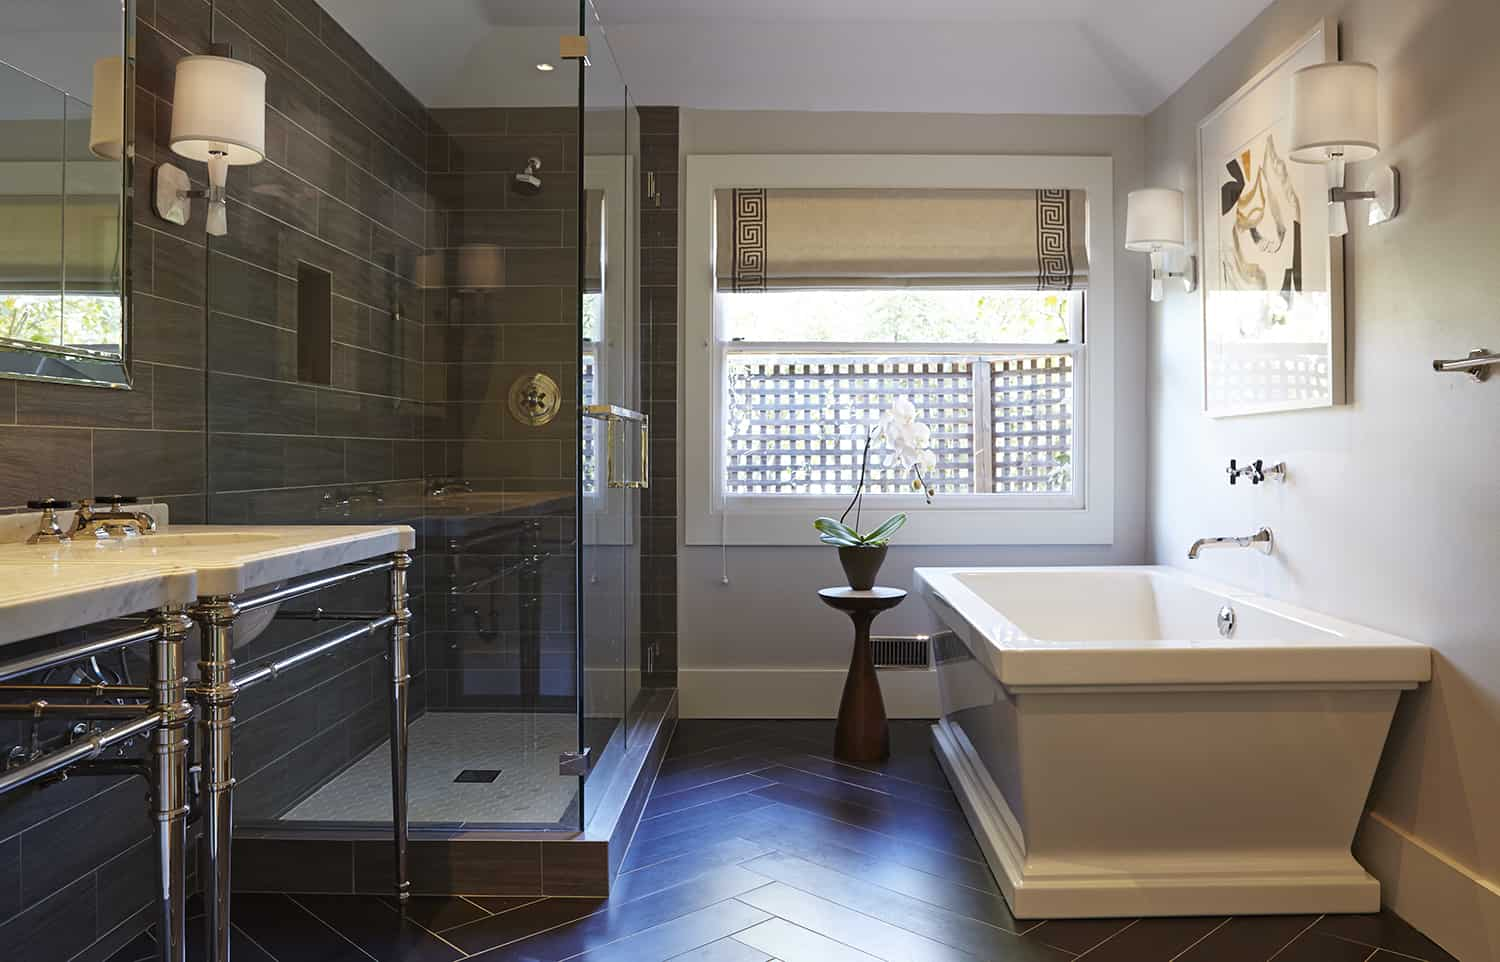 Bathroom Renovation SJZ Painting Home Renovation - Bathroom remodeling paramus nj